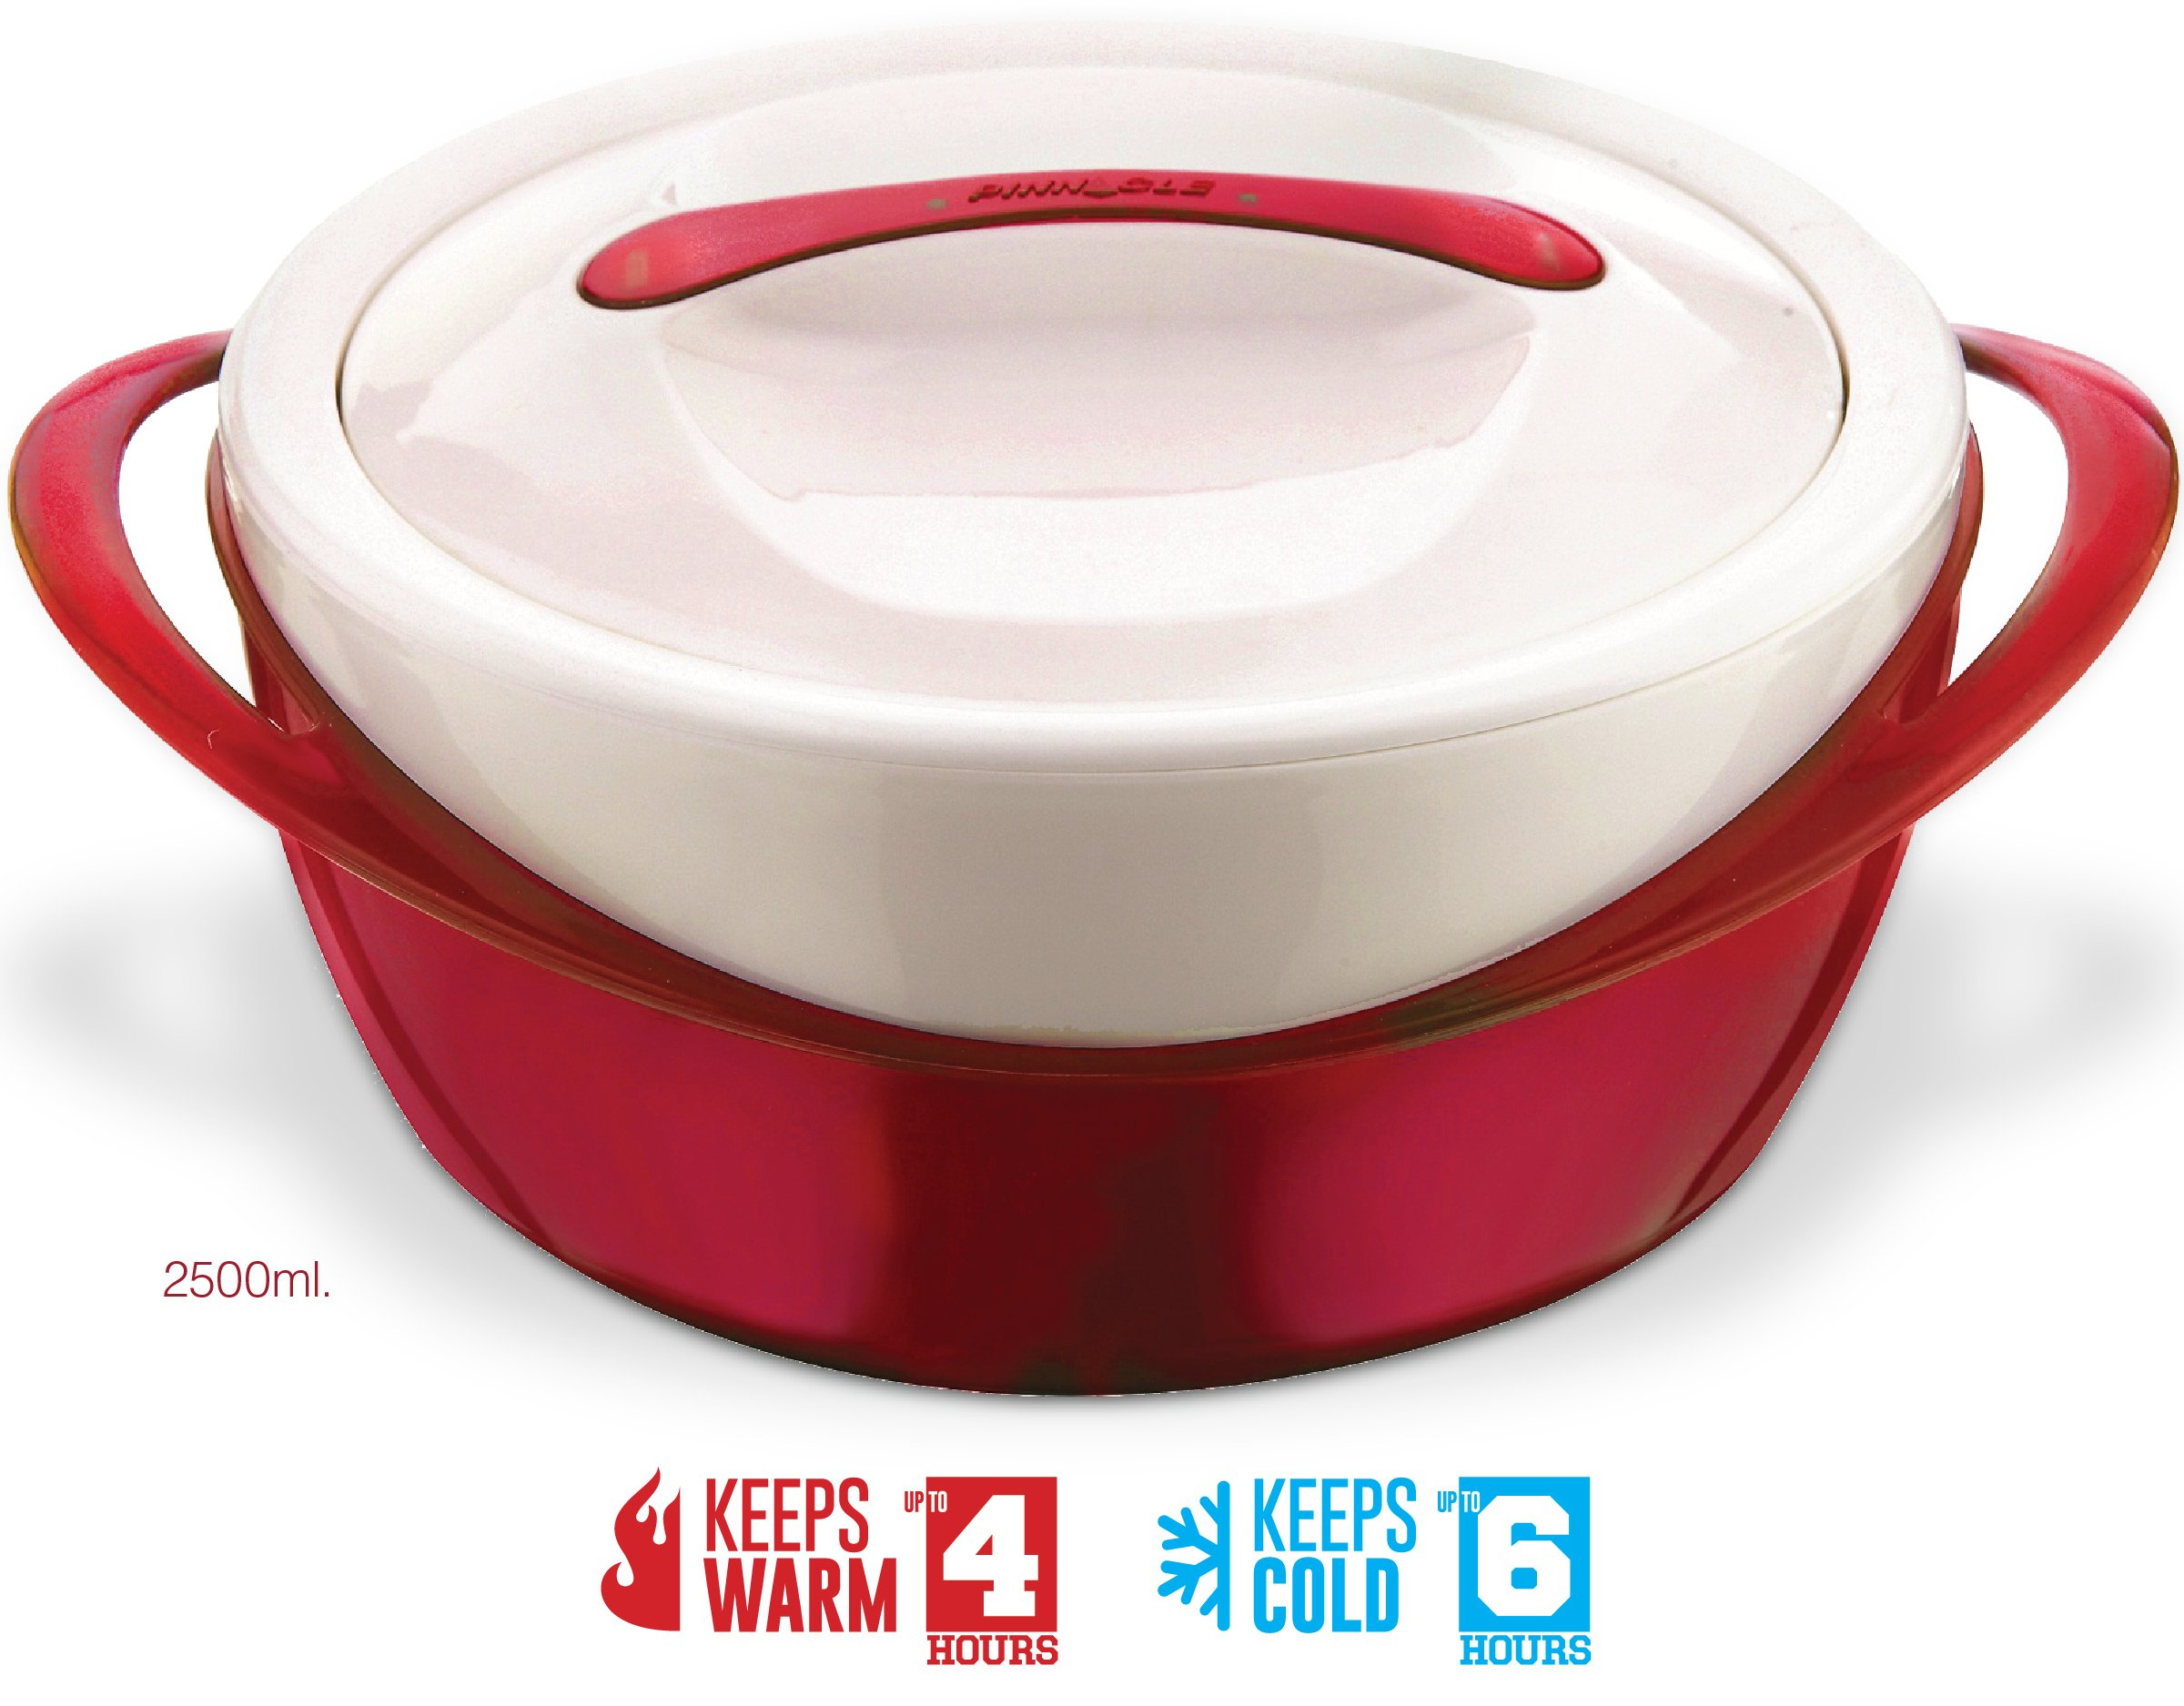 Pinnacle Casserole Dish - Large Soup and Salad Bowl - Insulated Serving Bowl With Lid - Red by Pinnacle Thermoware